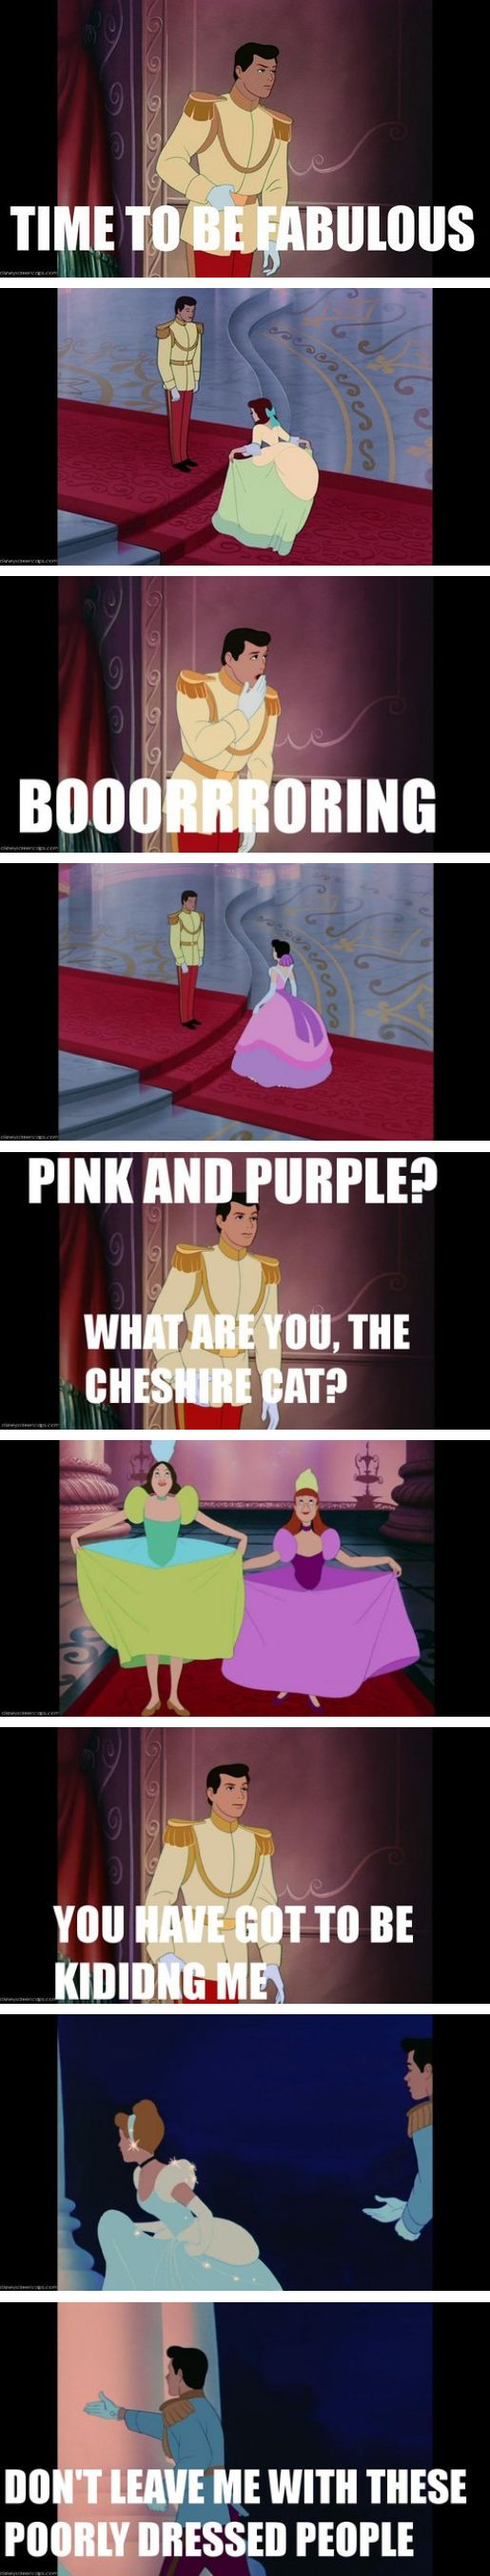 Cinderella is actually the story of one man on a mission to find a fashionably dressed woman.